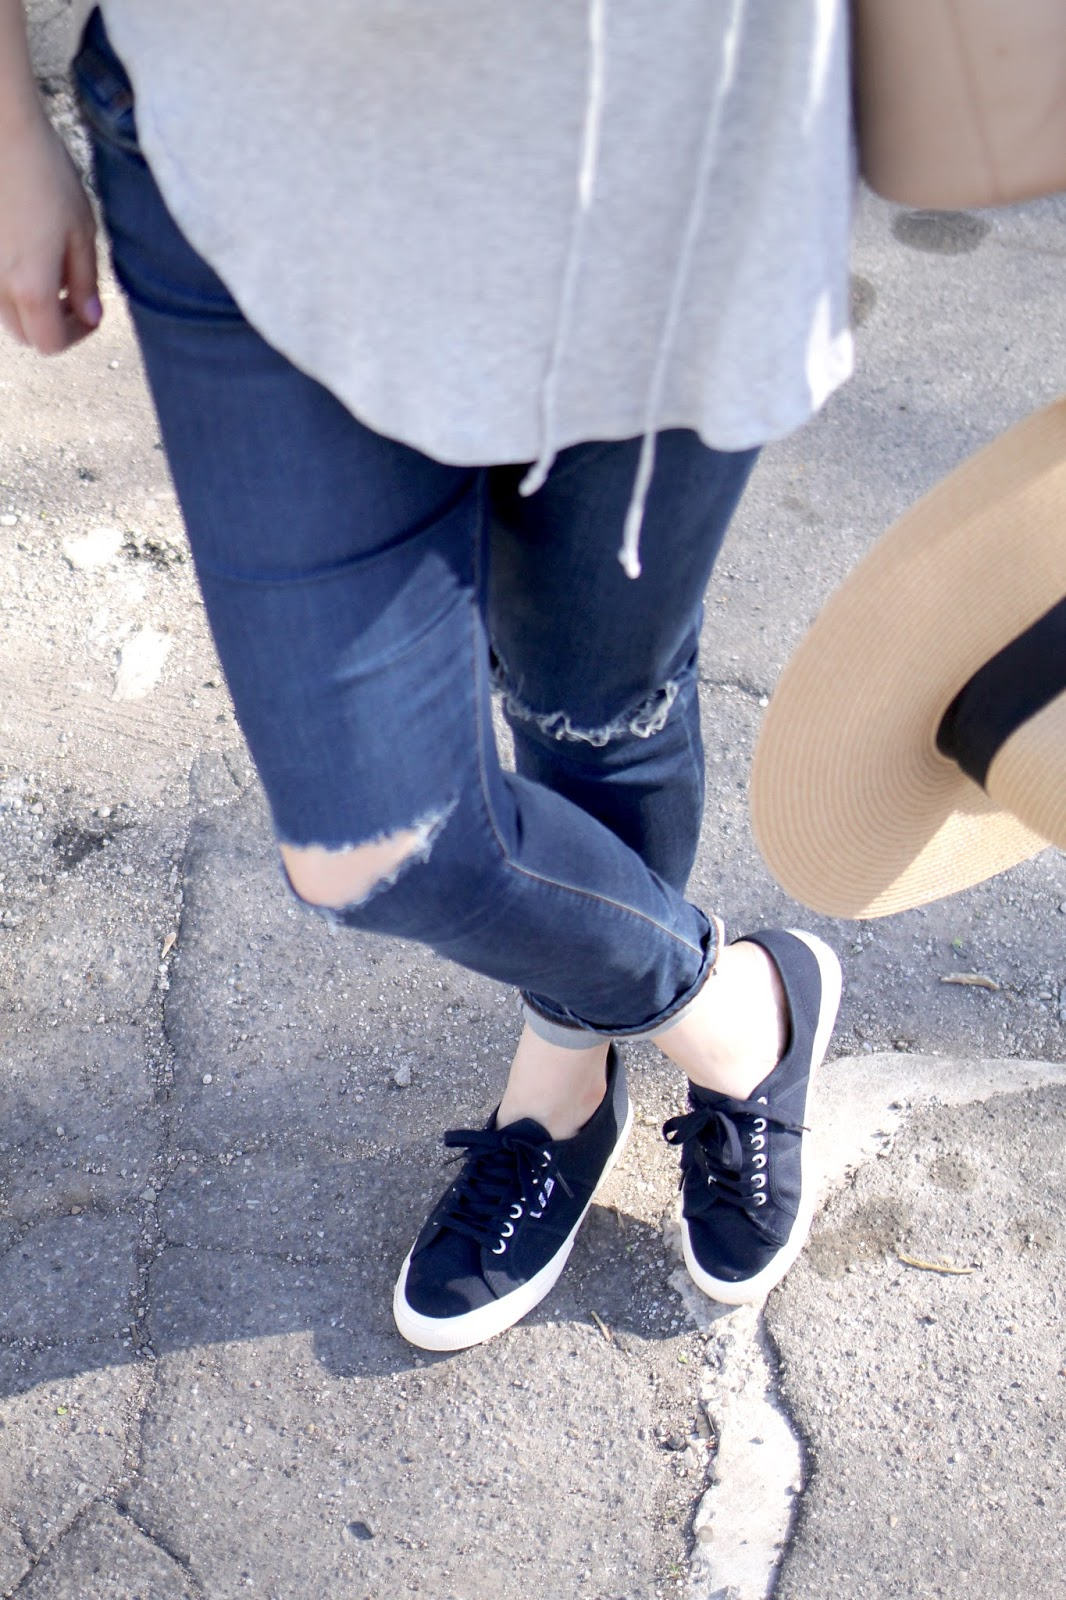 bandana neck tie, navy superga sneakers, ripped jeans, lace up tee shirt, casual outfit, weekend look, sun hat, tote bag faux leather